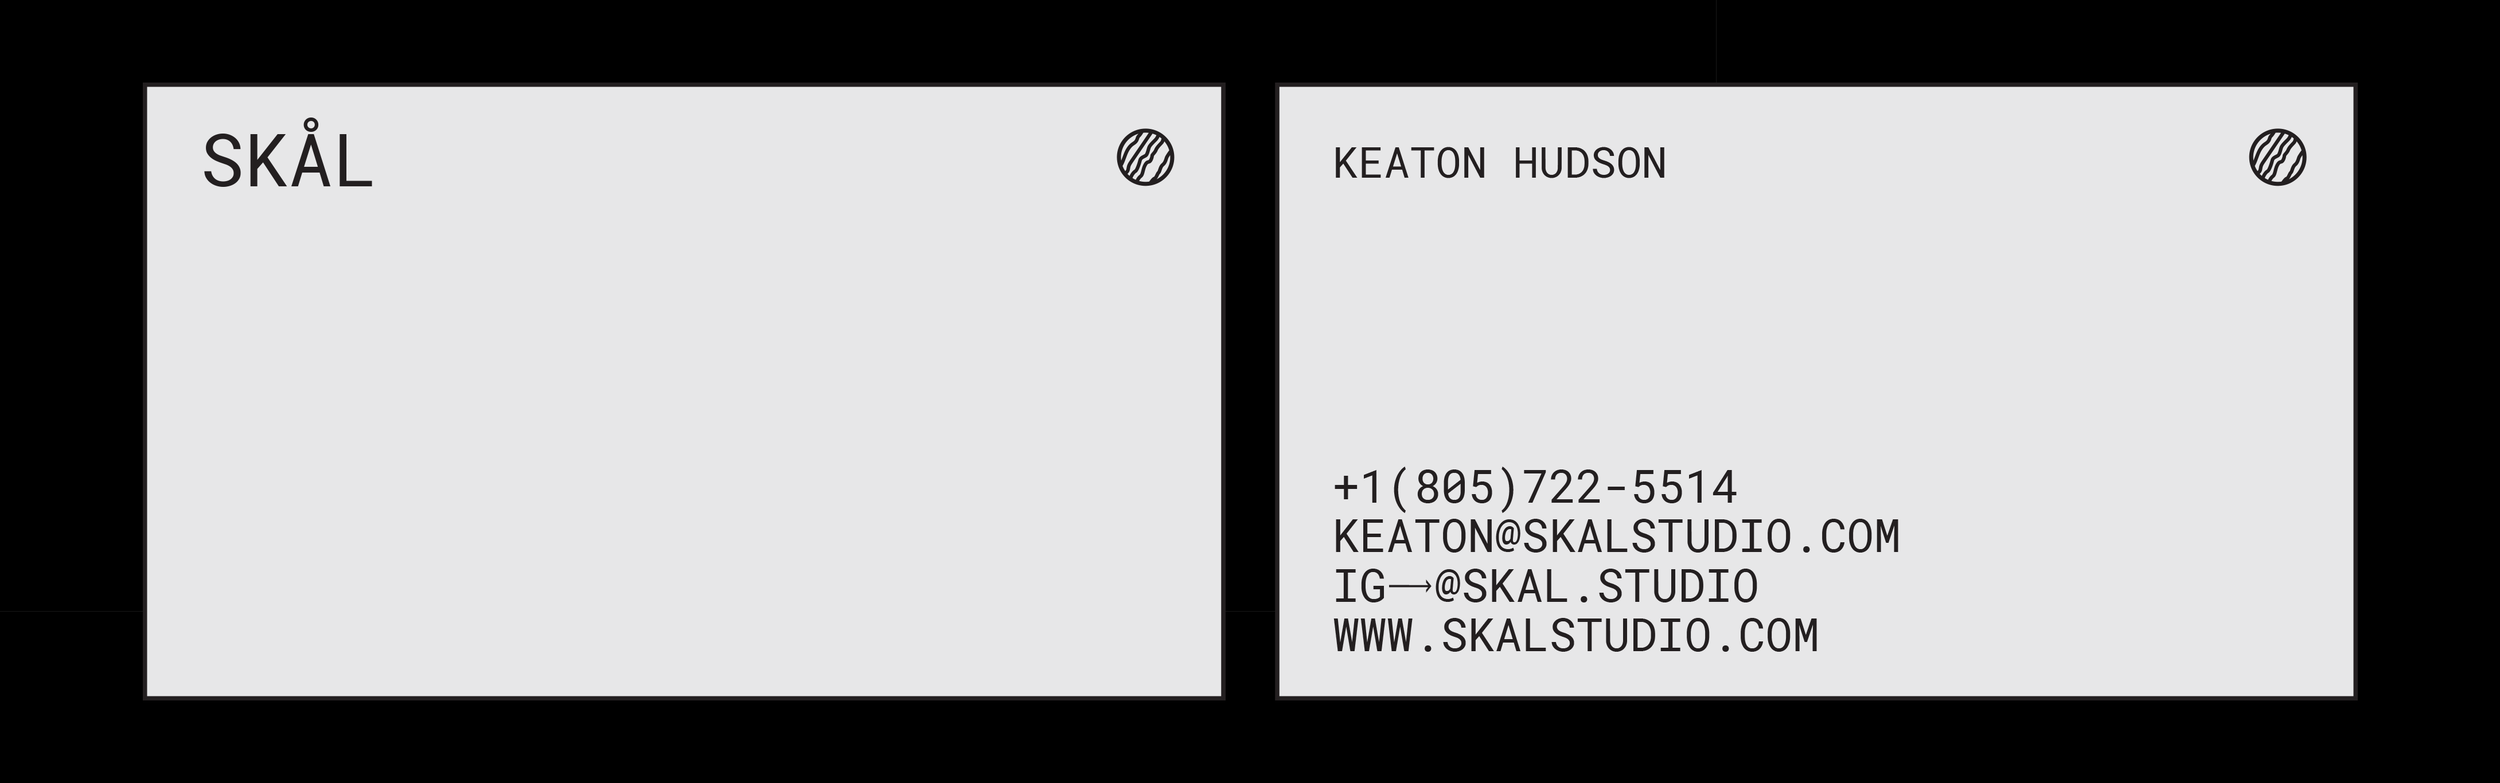 Business Cards 1.png